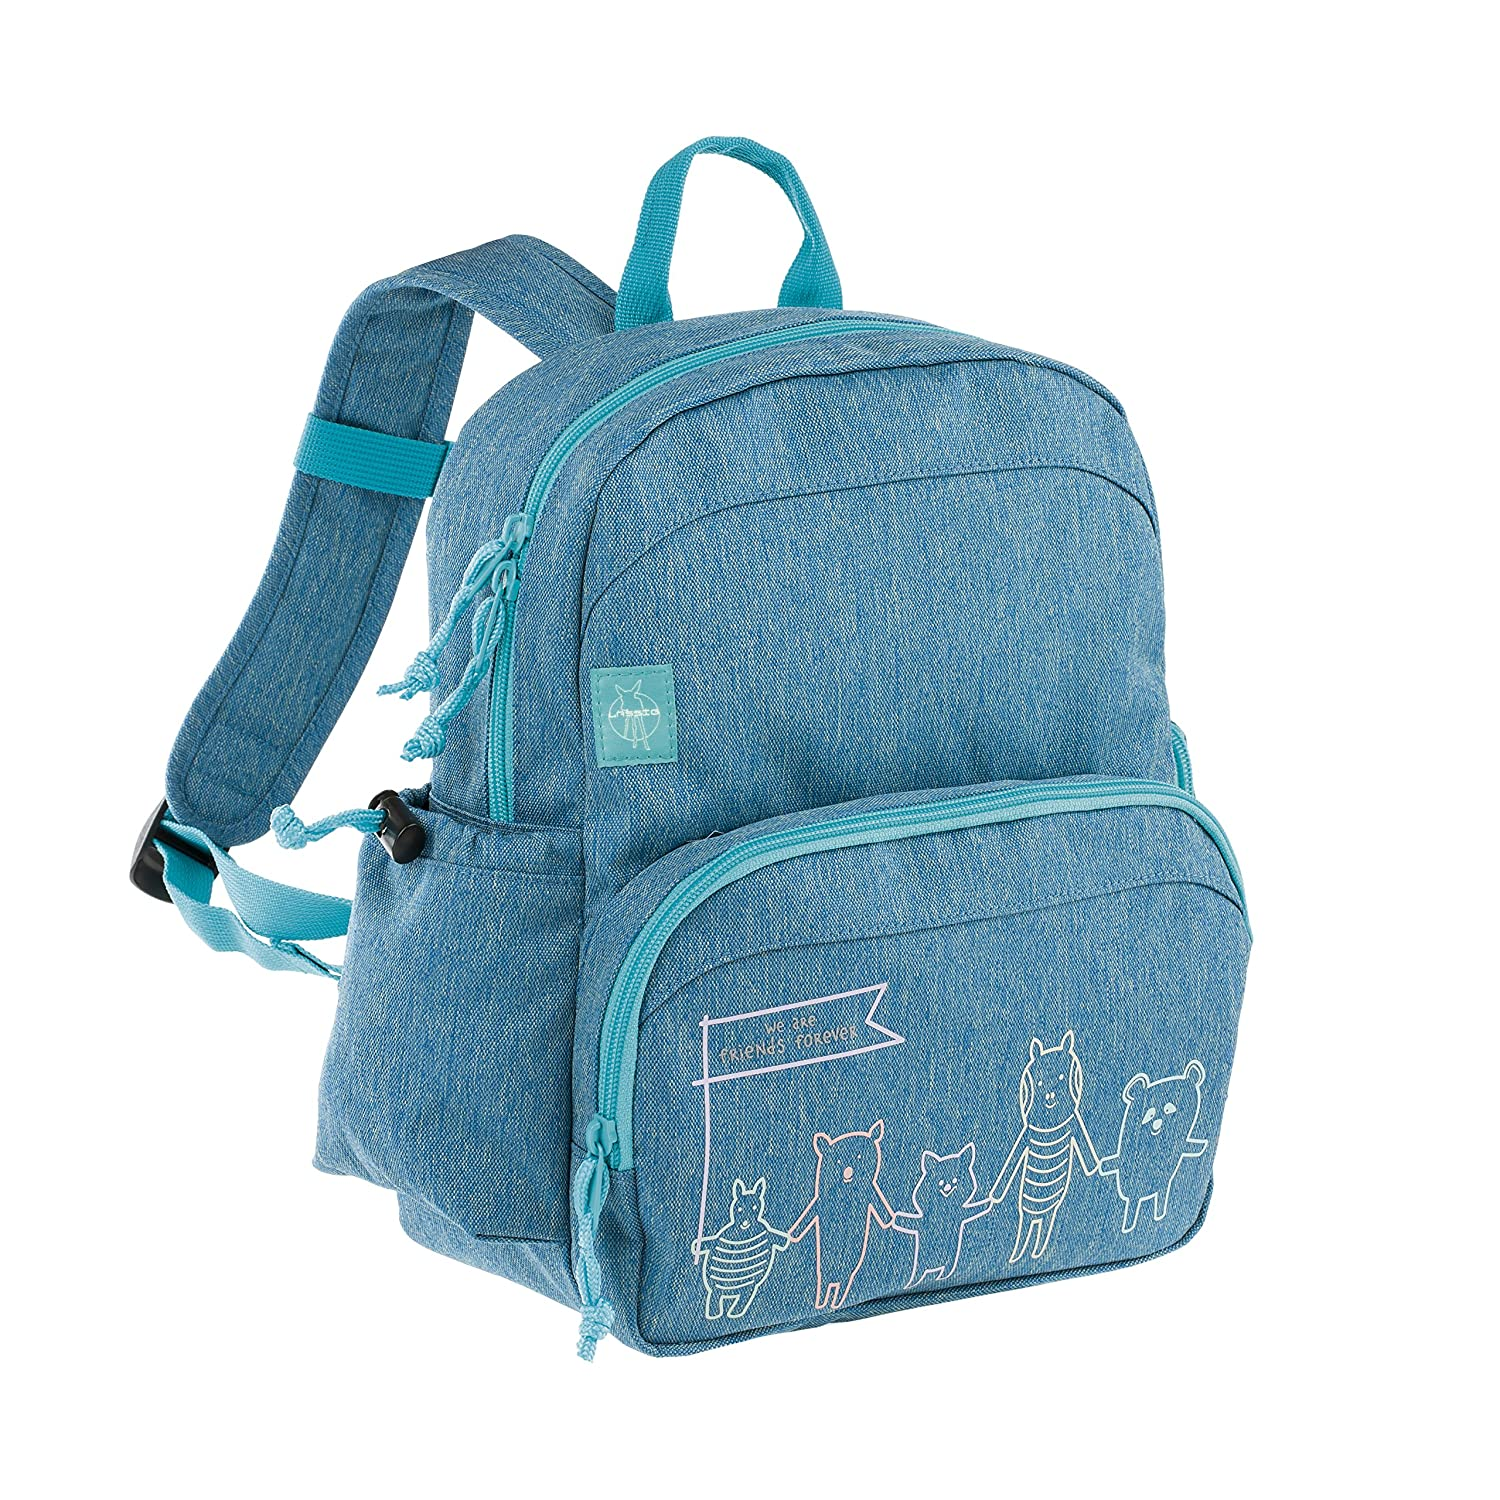 Lassig About Friends Medium Backpack Blue